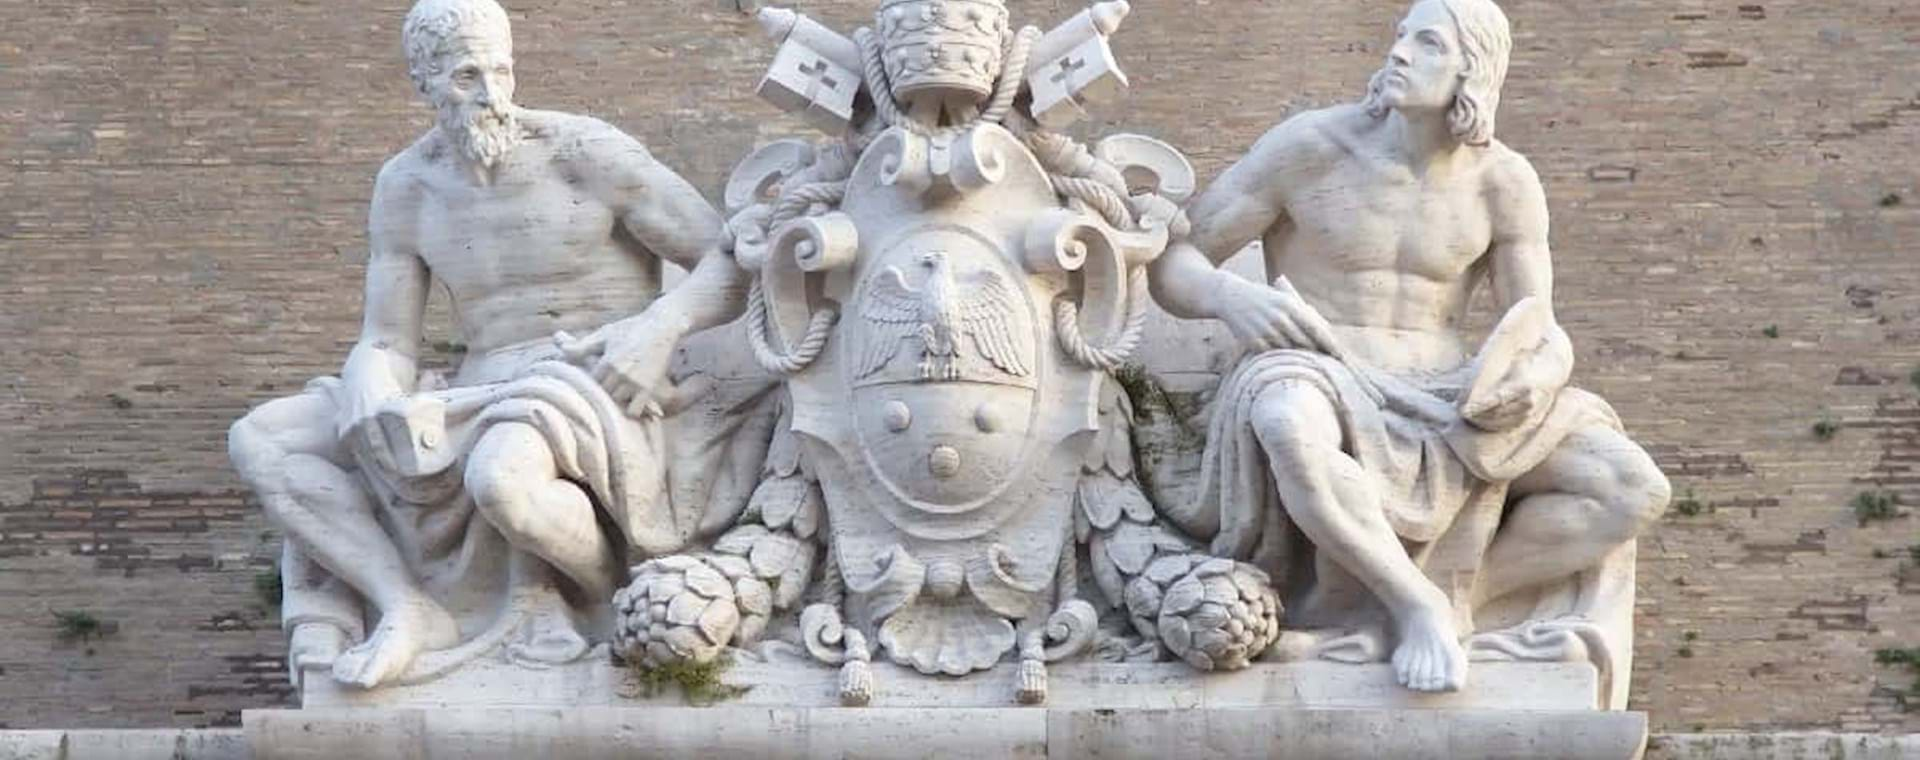 Statues on top of the entrance of the Vatican Museums